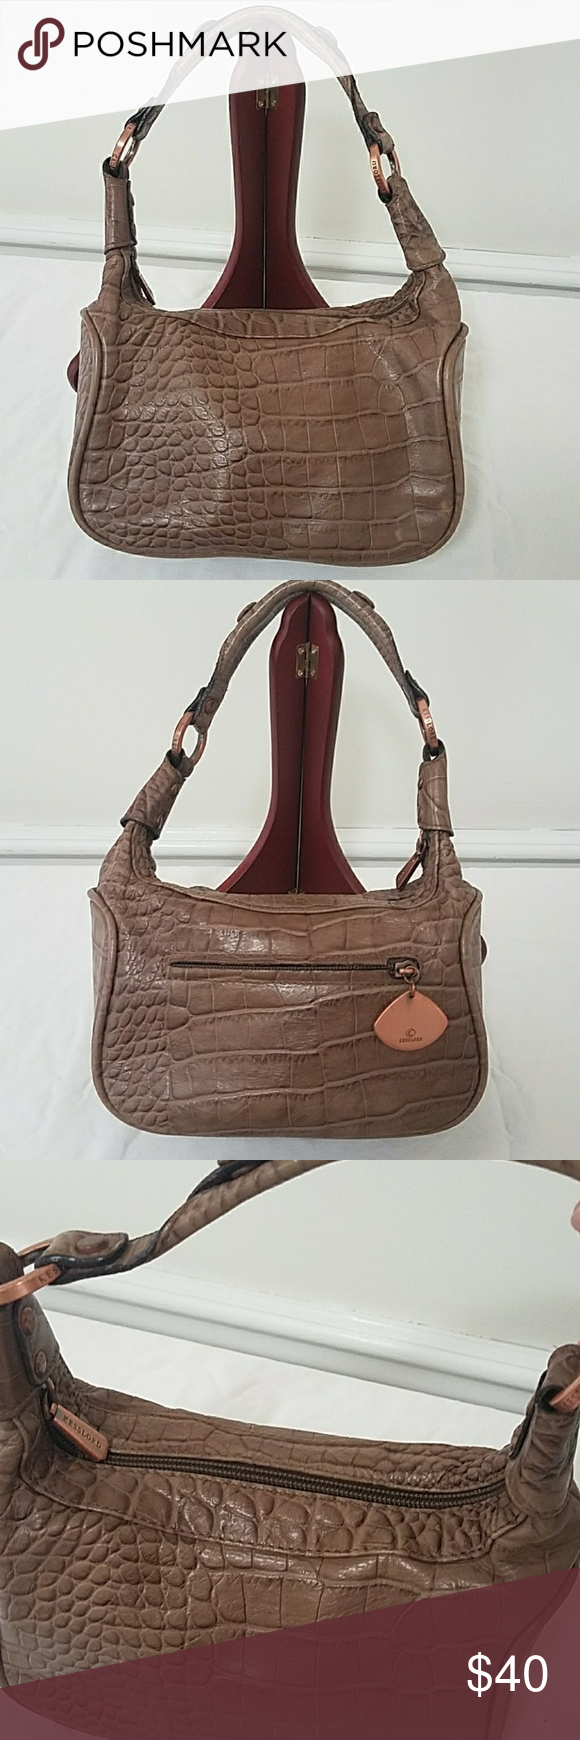 Kesslord Paris Croc Embossed Leather Demi Bag Taupe Brown With Rose